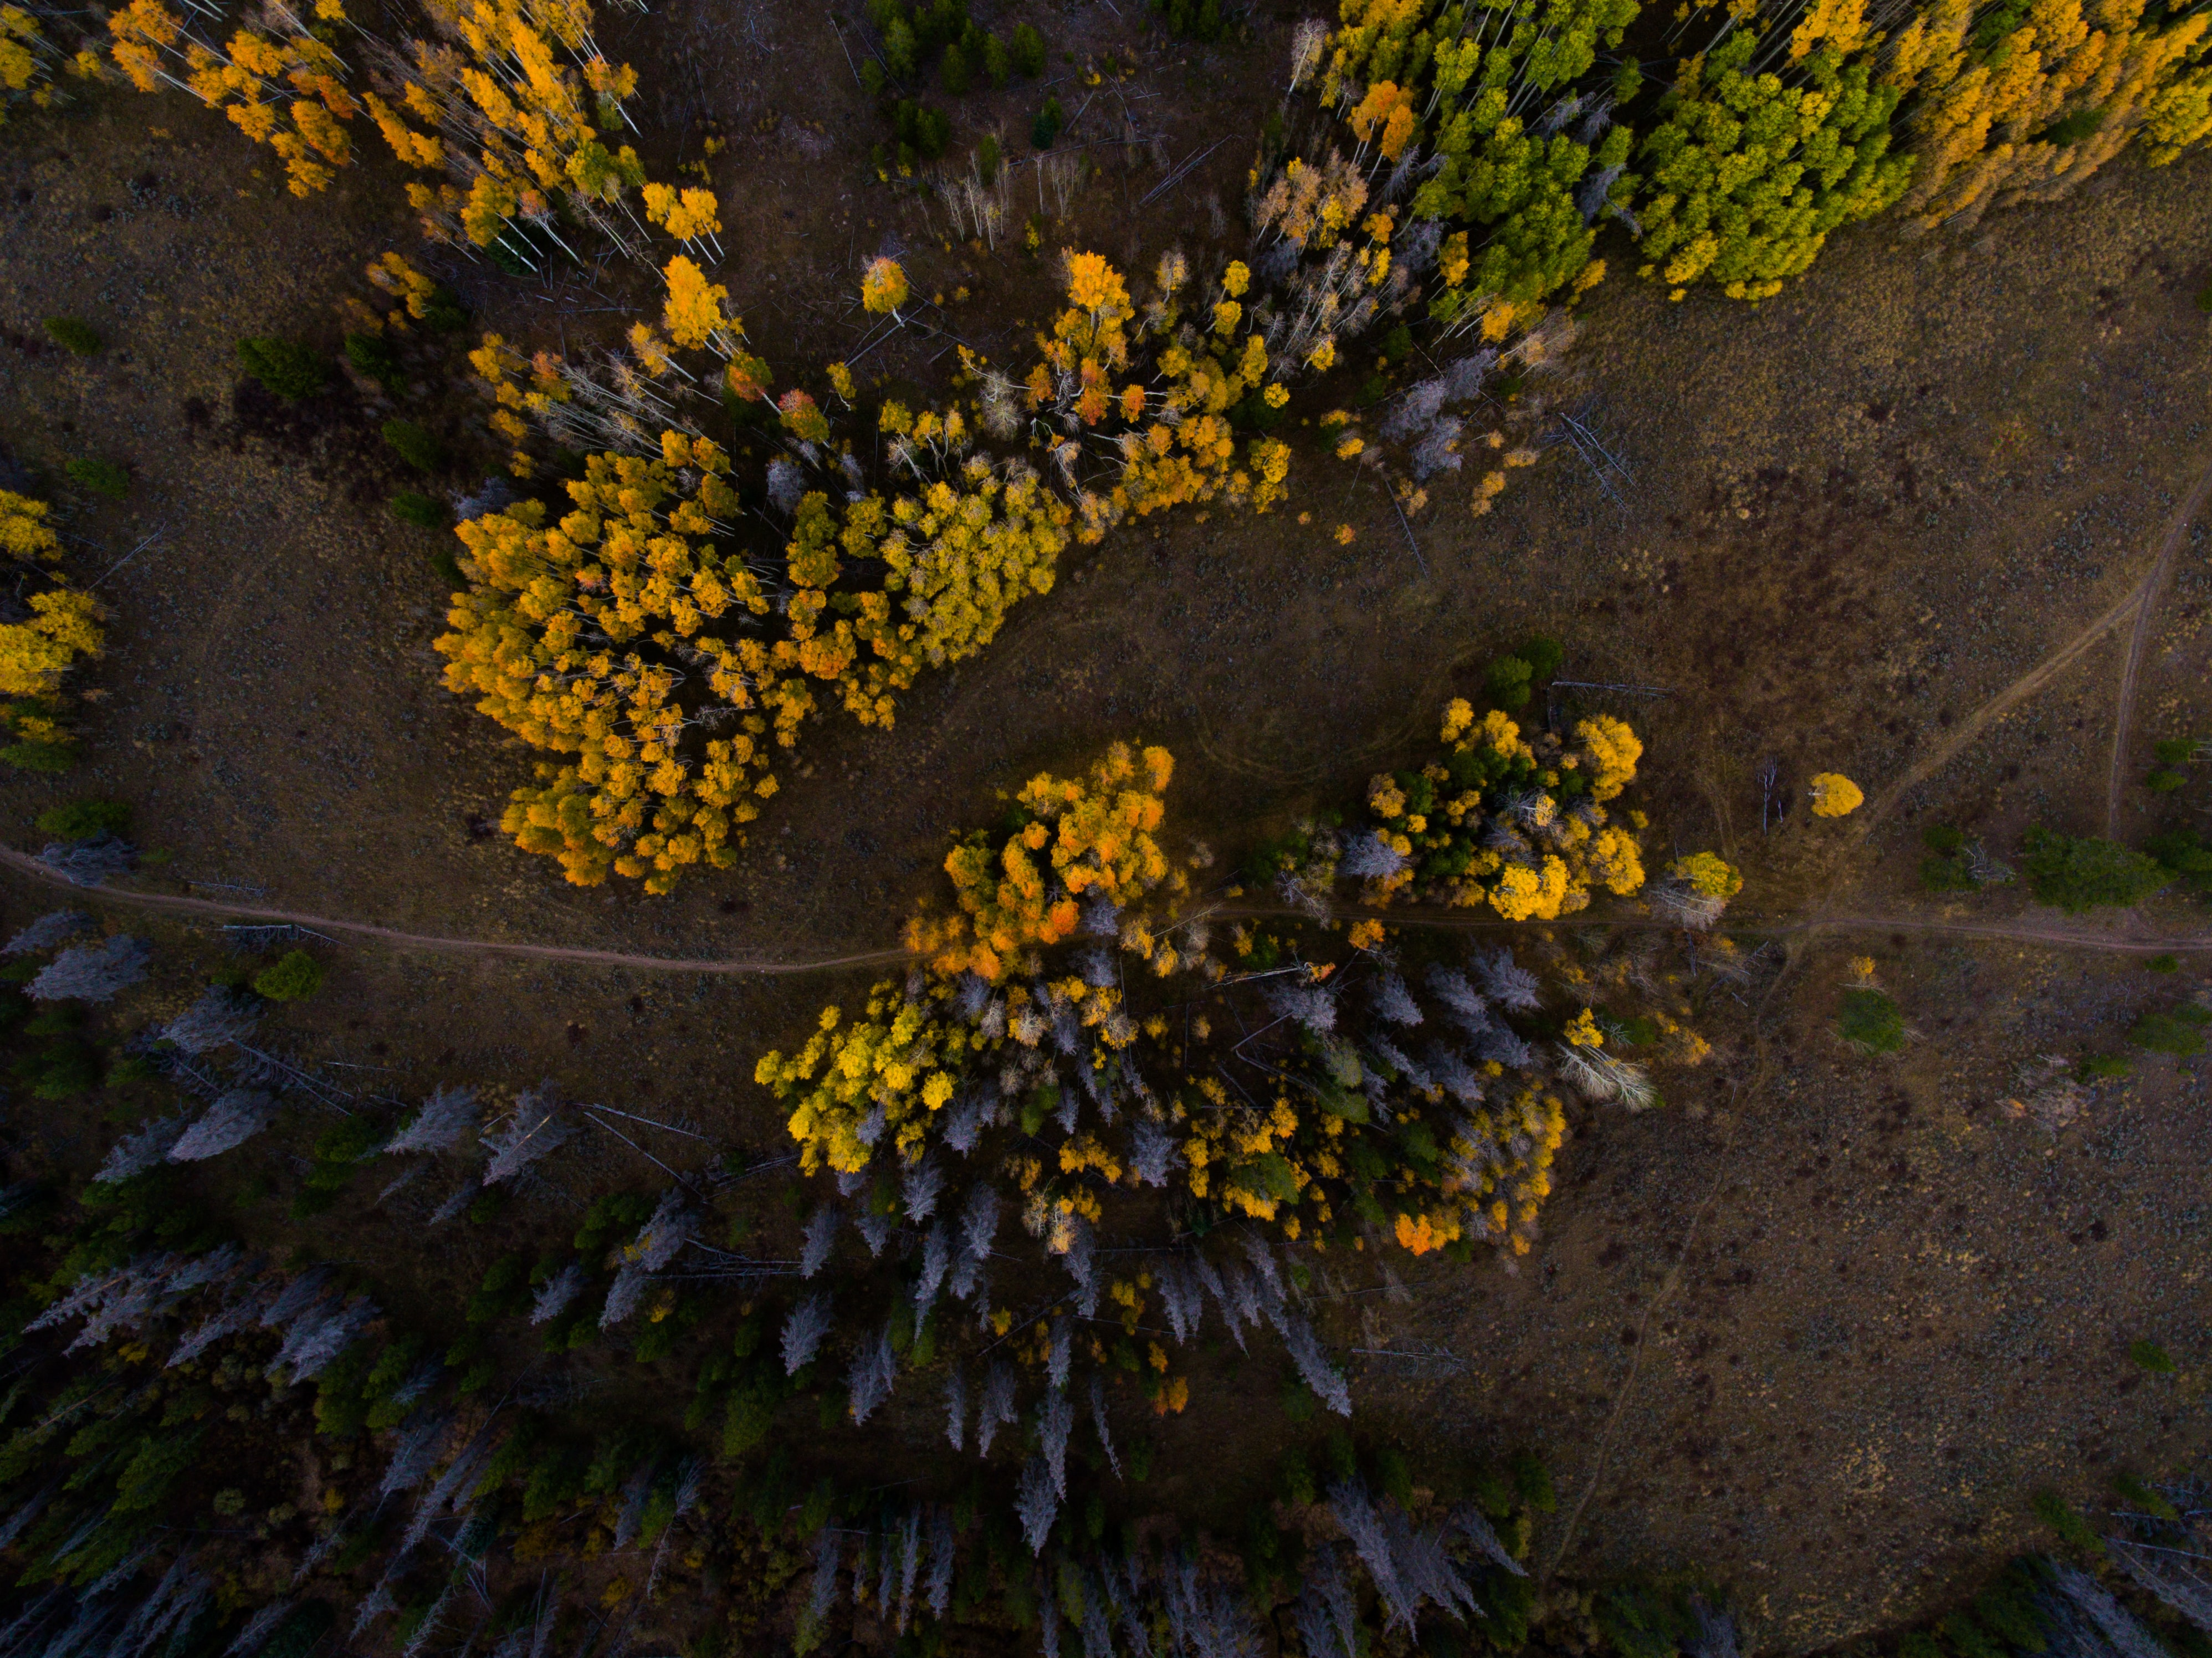 aerial photo of yellow flowers